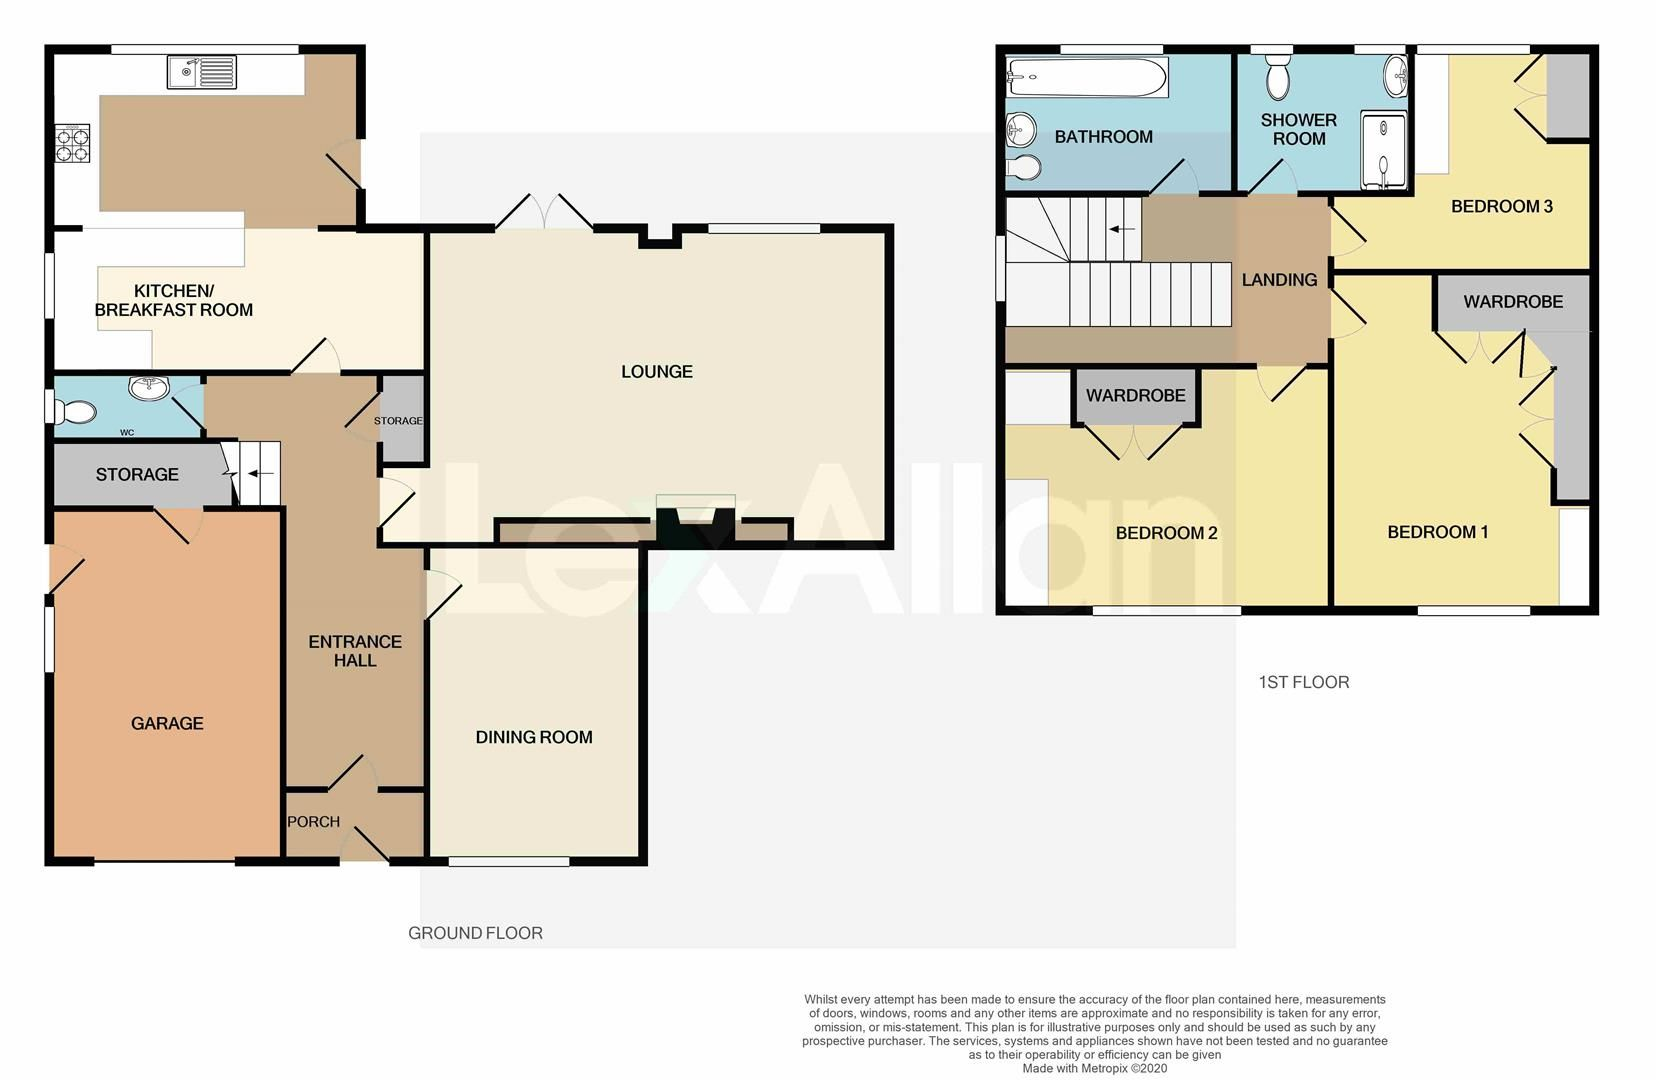 3 bed detached for sale - Property Floorplan